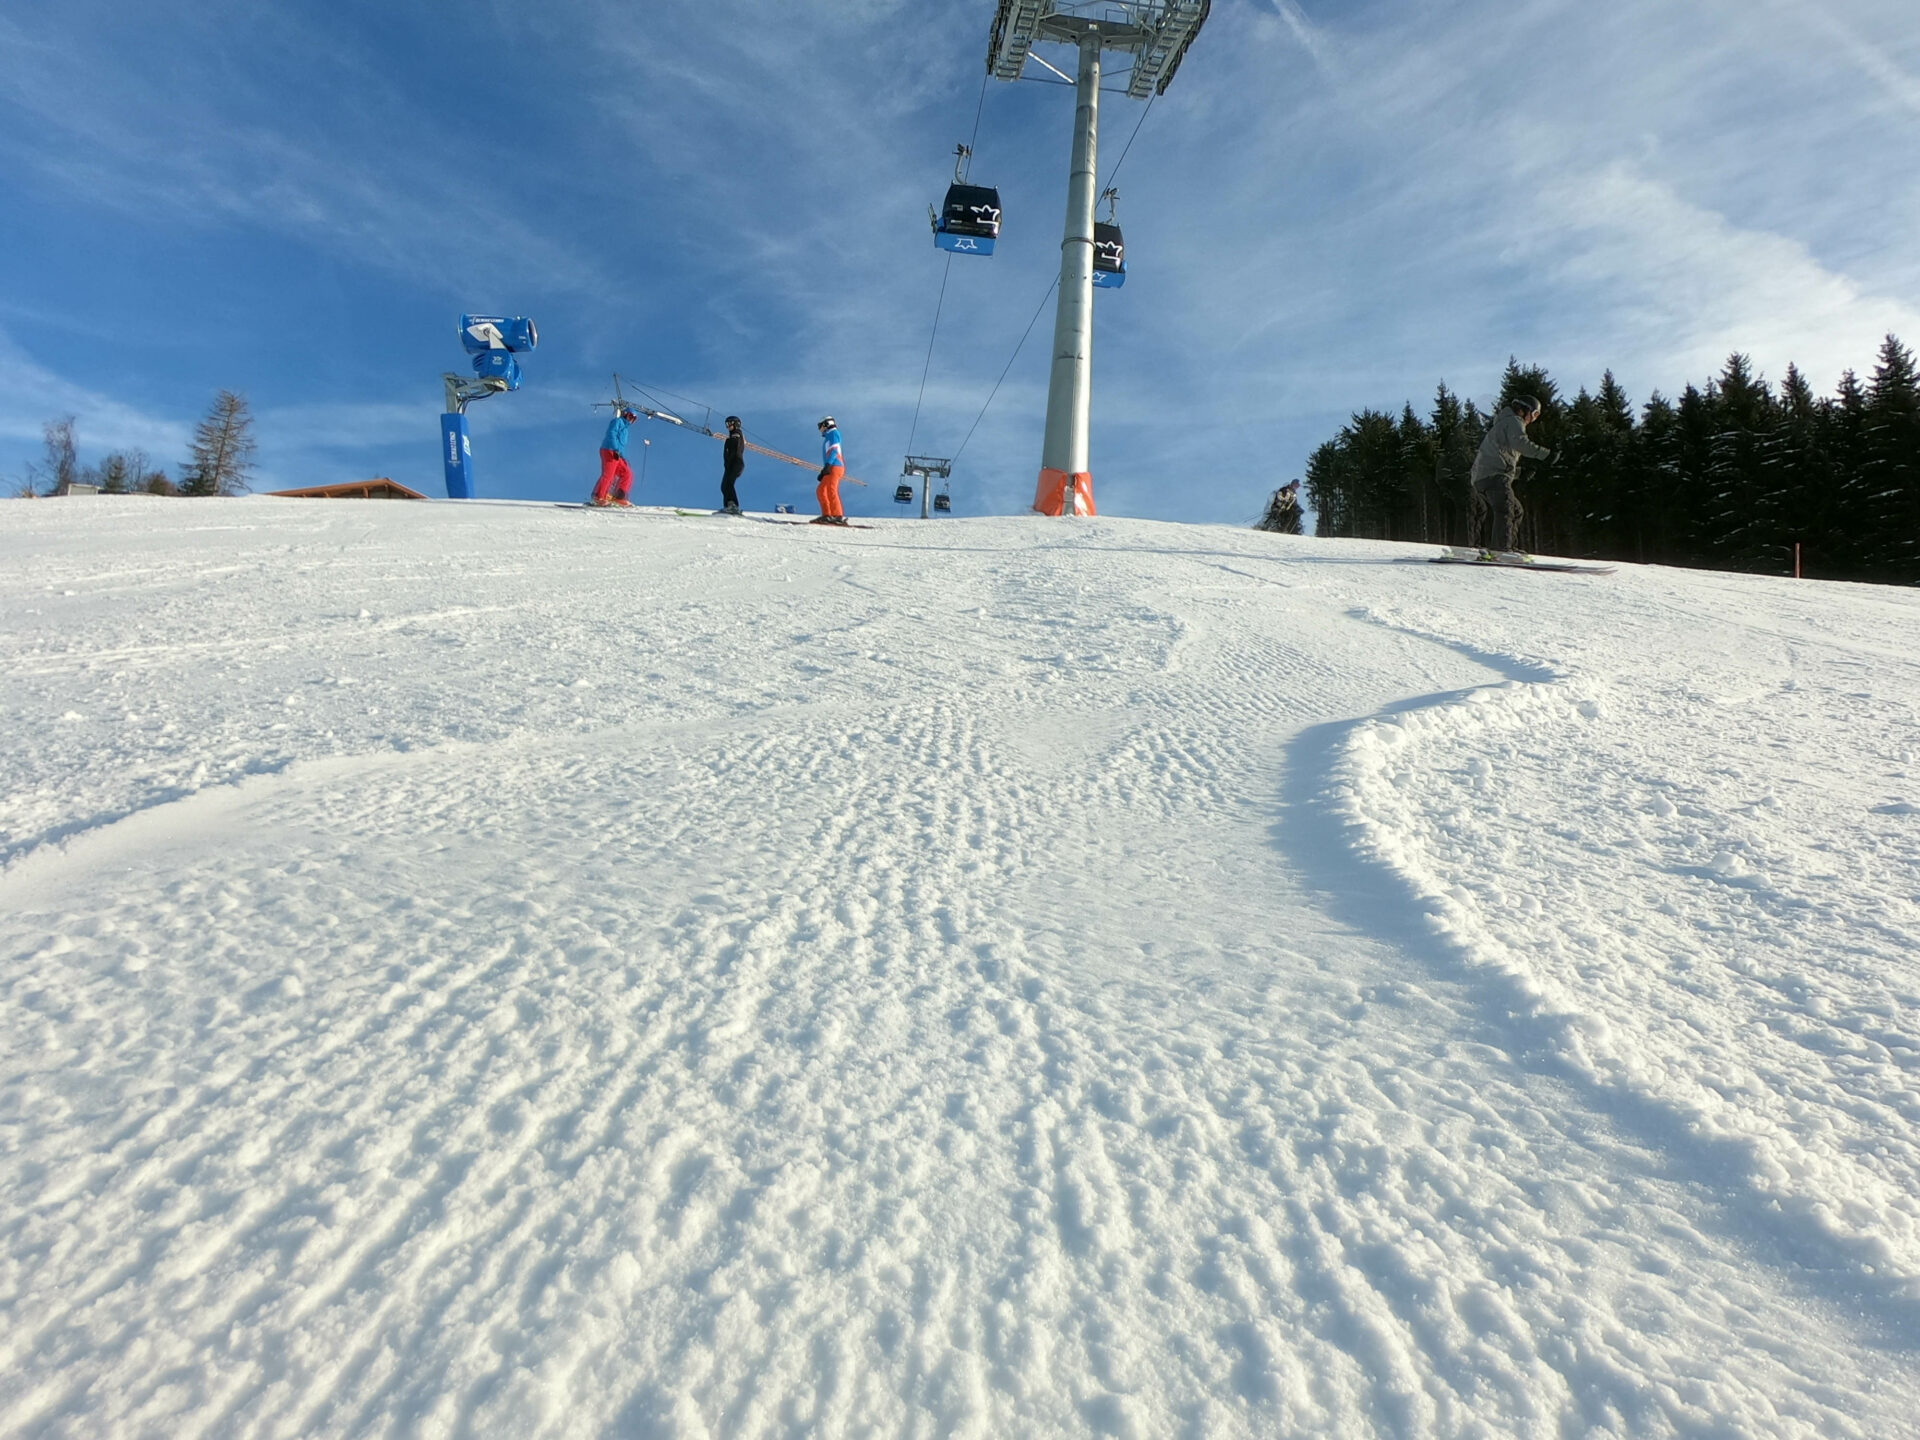 Skiing without the crowd in Austria